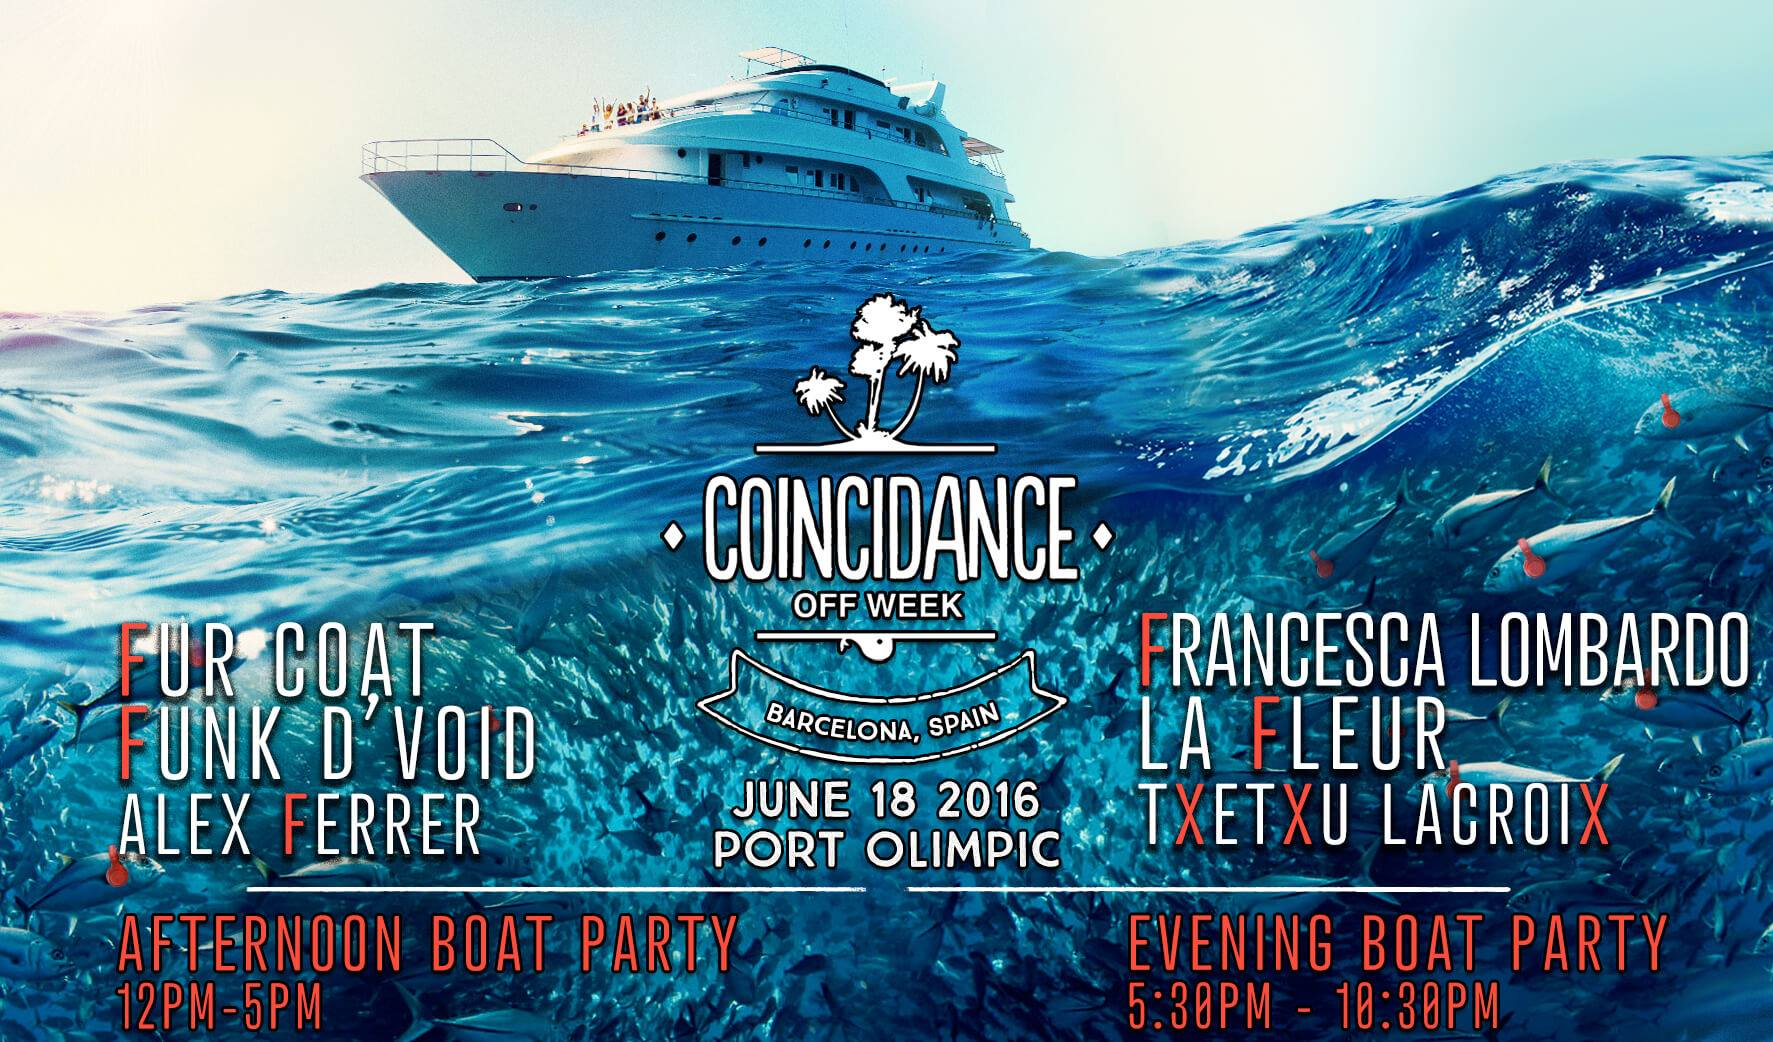 Coincidance boat party